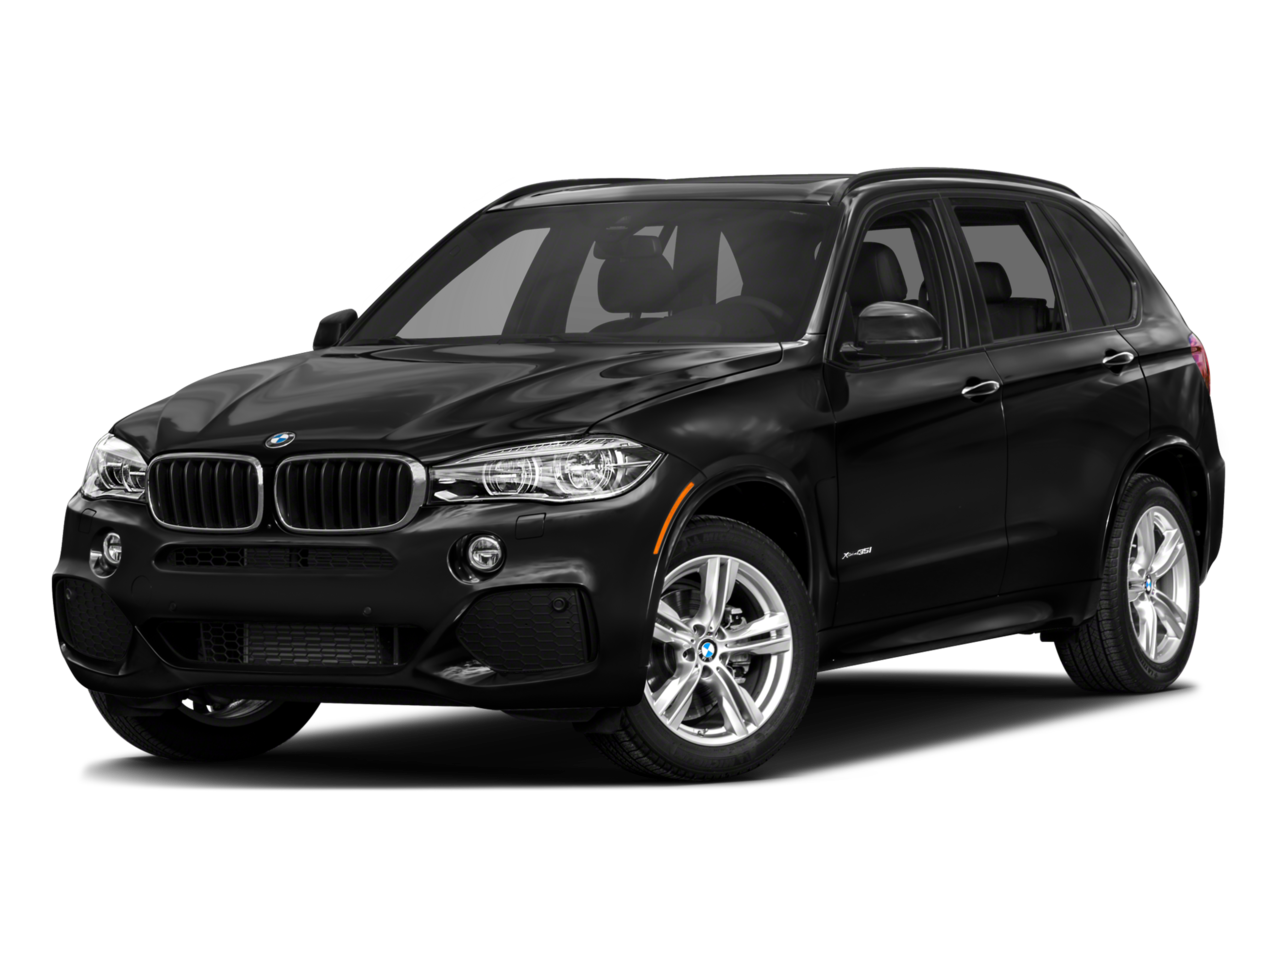 2017 BMW X5 - Huntington, NY